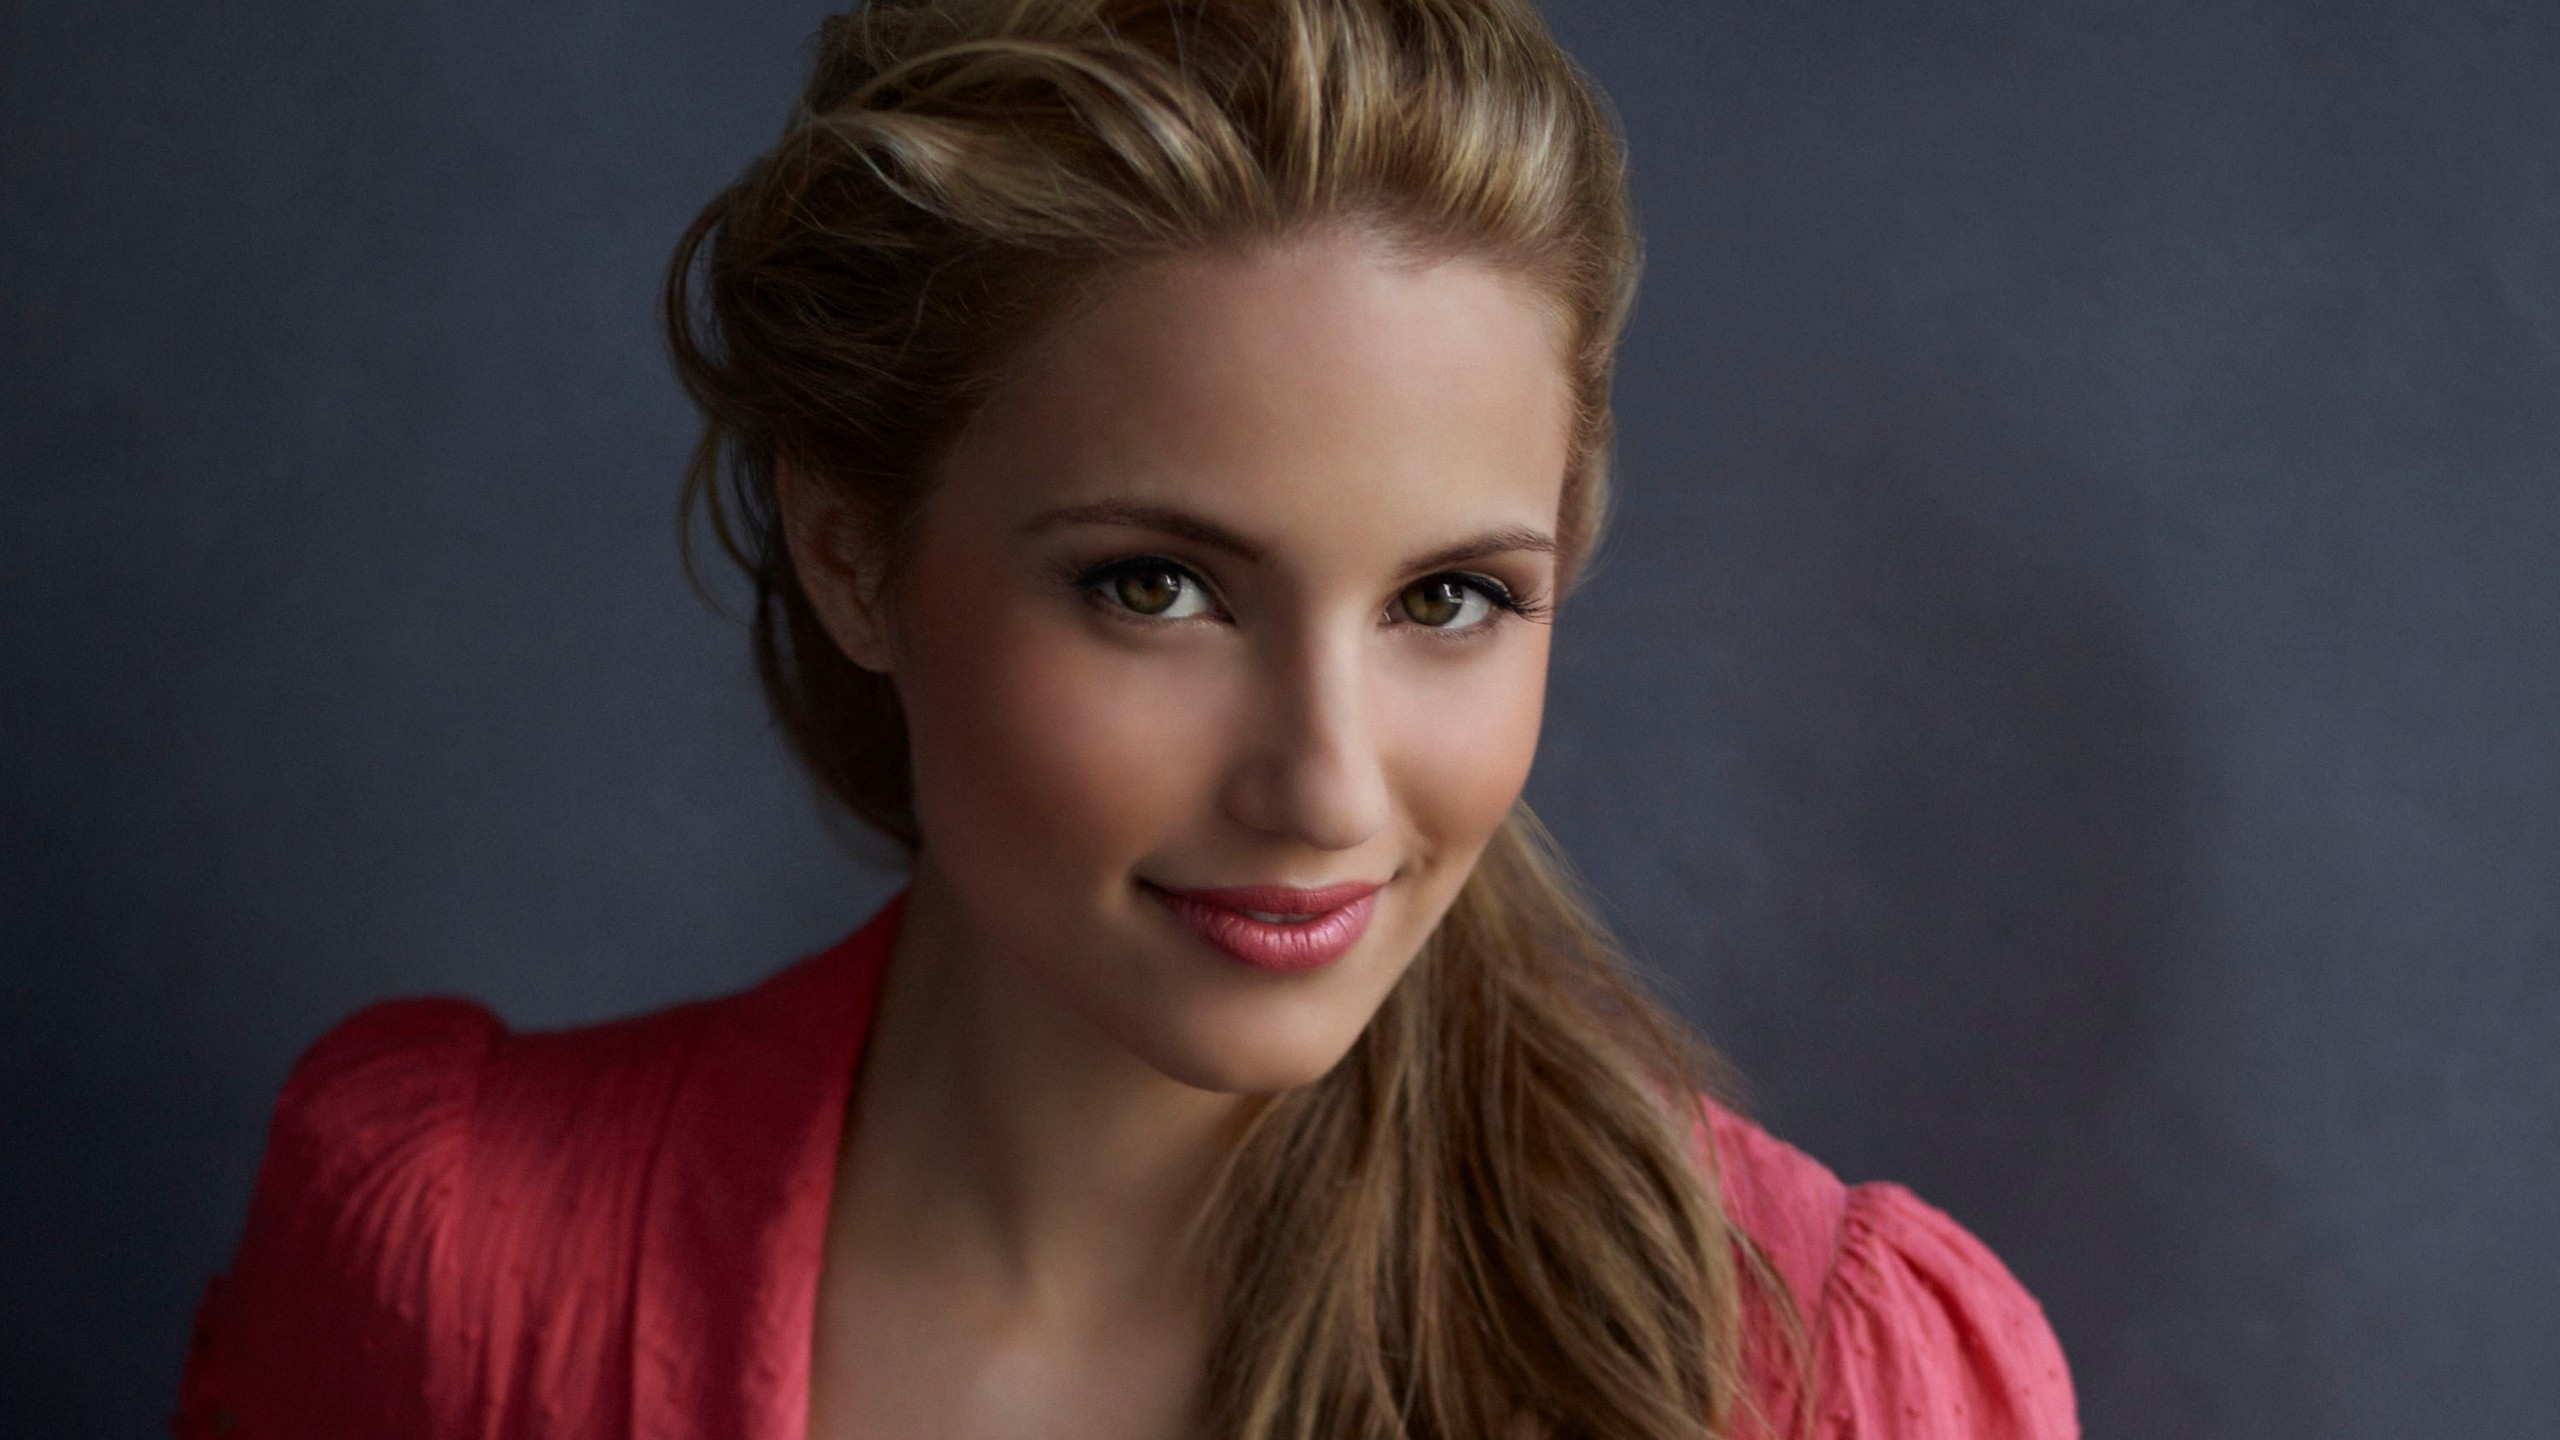 2560x1440 Wallpaper Hd Pictures Of Dianna Agron Pictures Of Celebrities